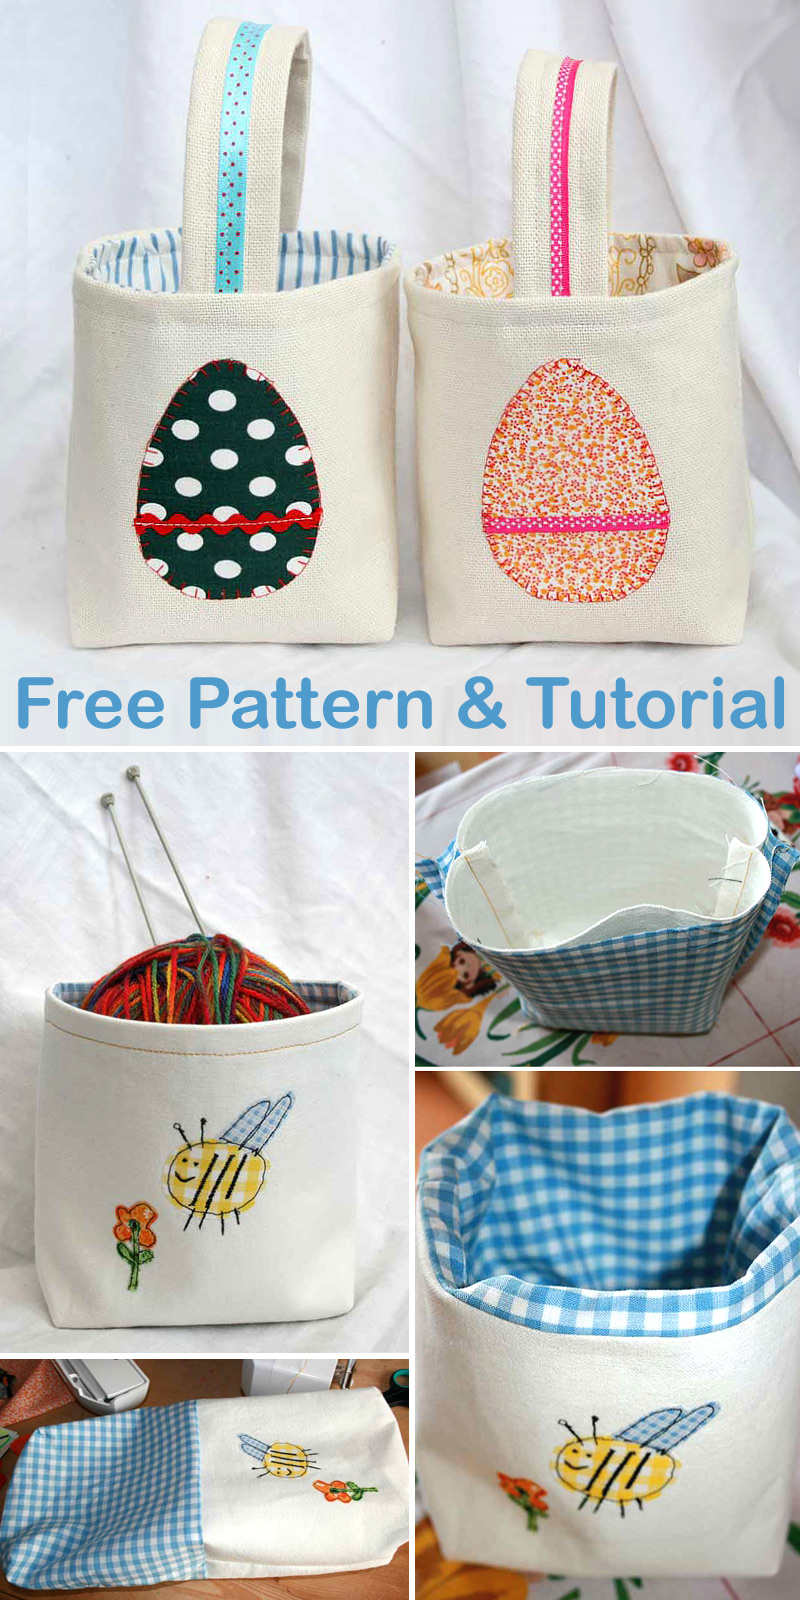 Fabric Basket Free Pattern and Tutorial